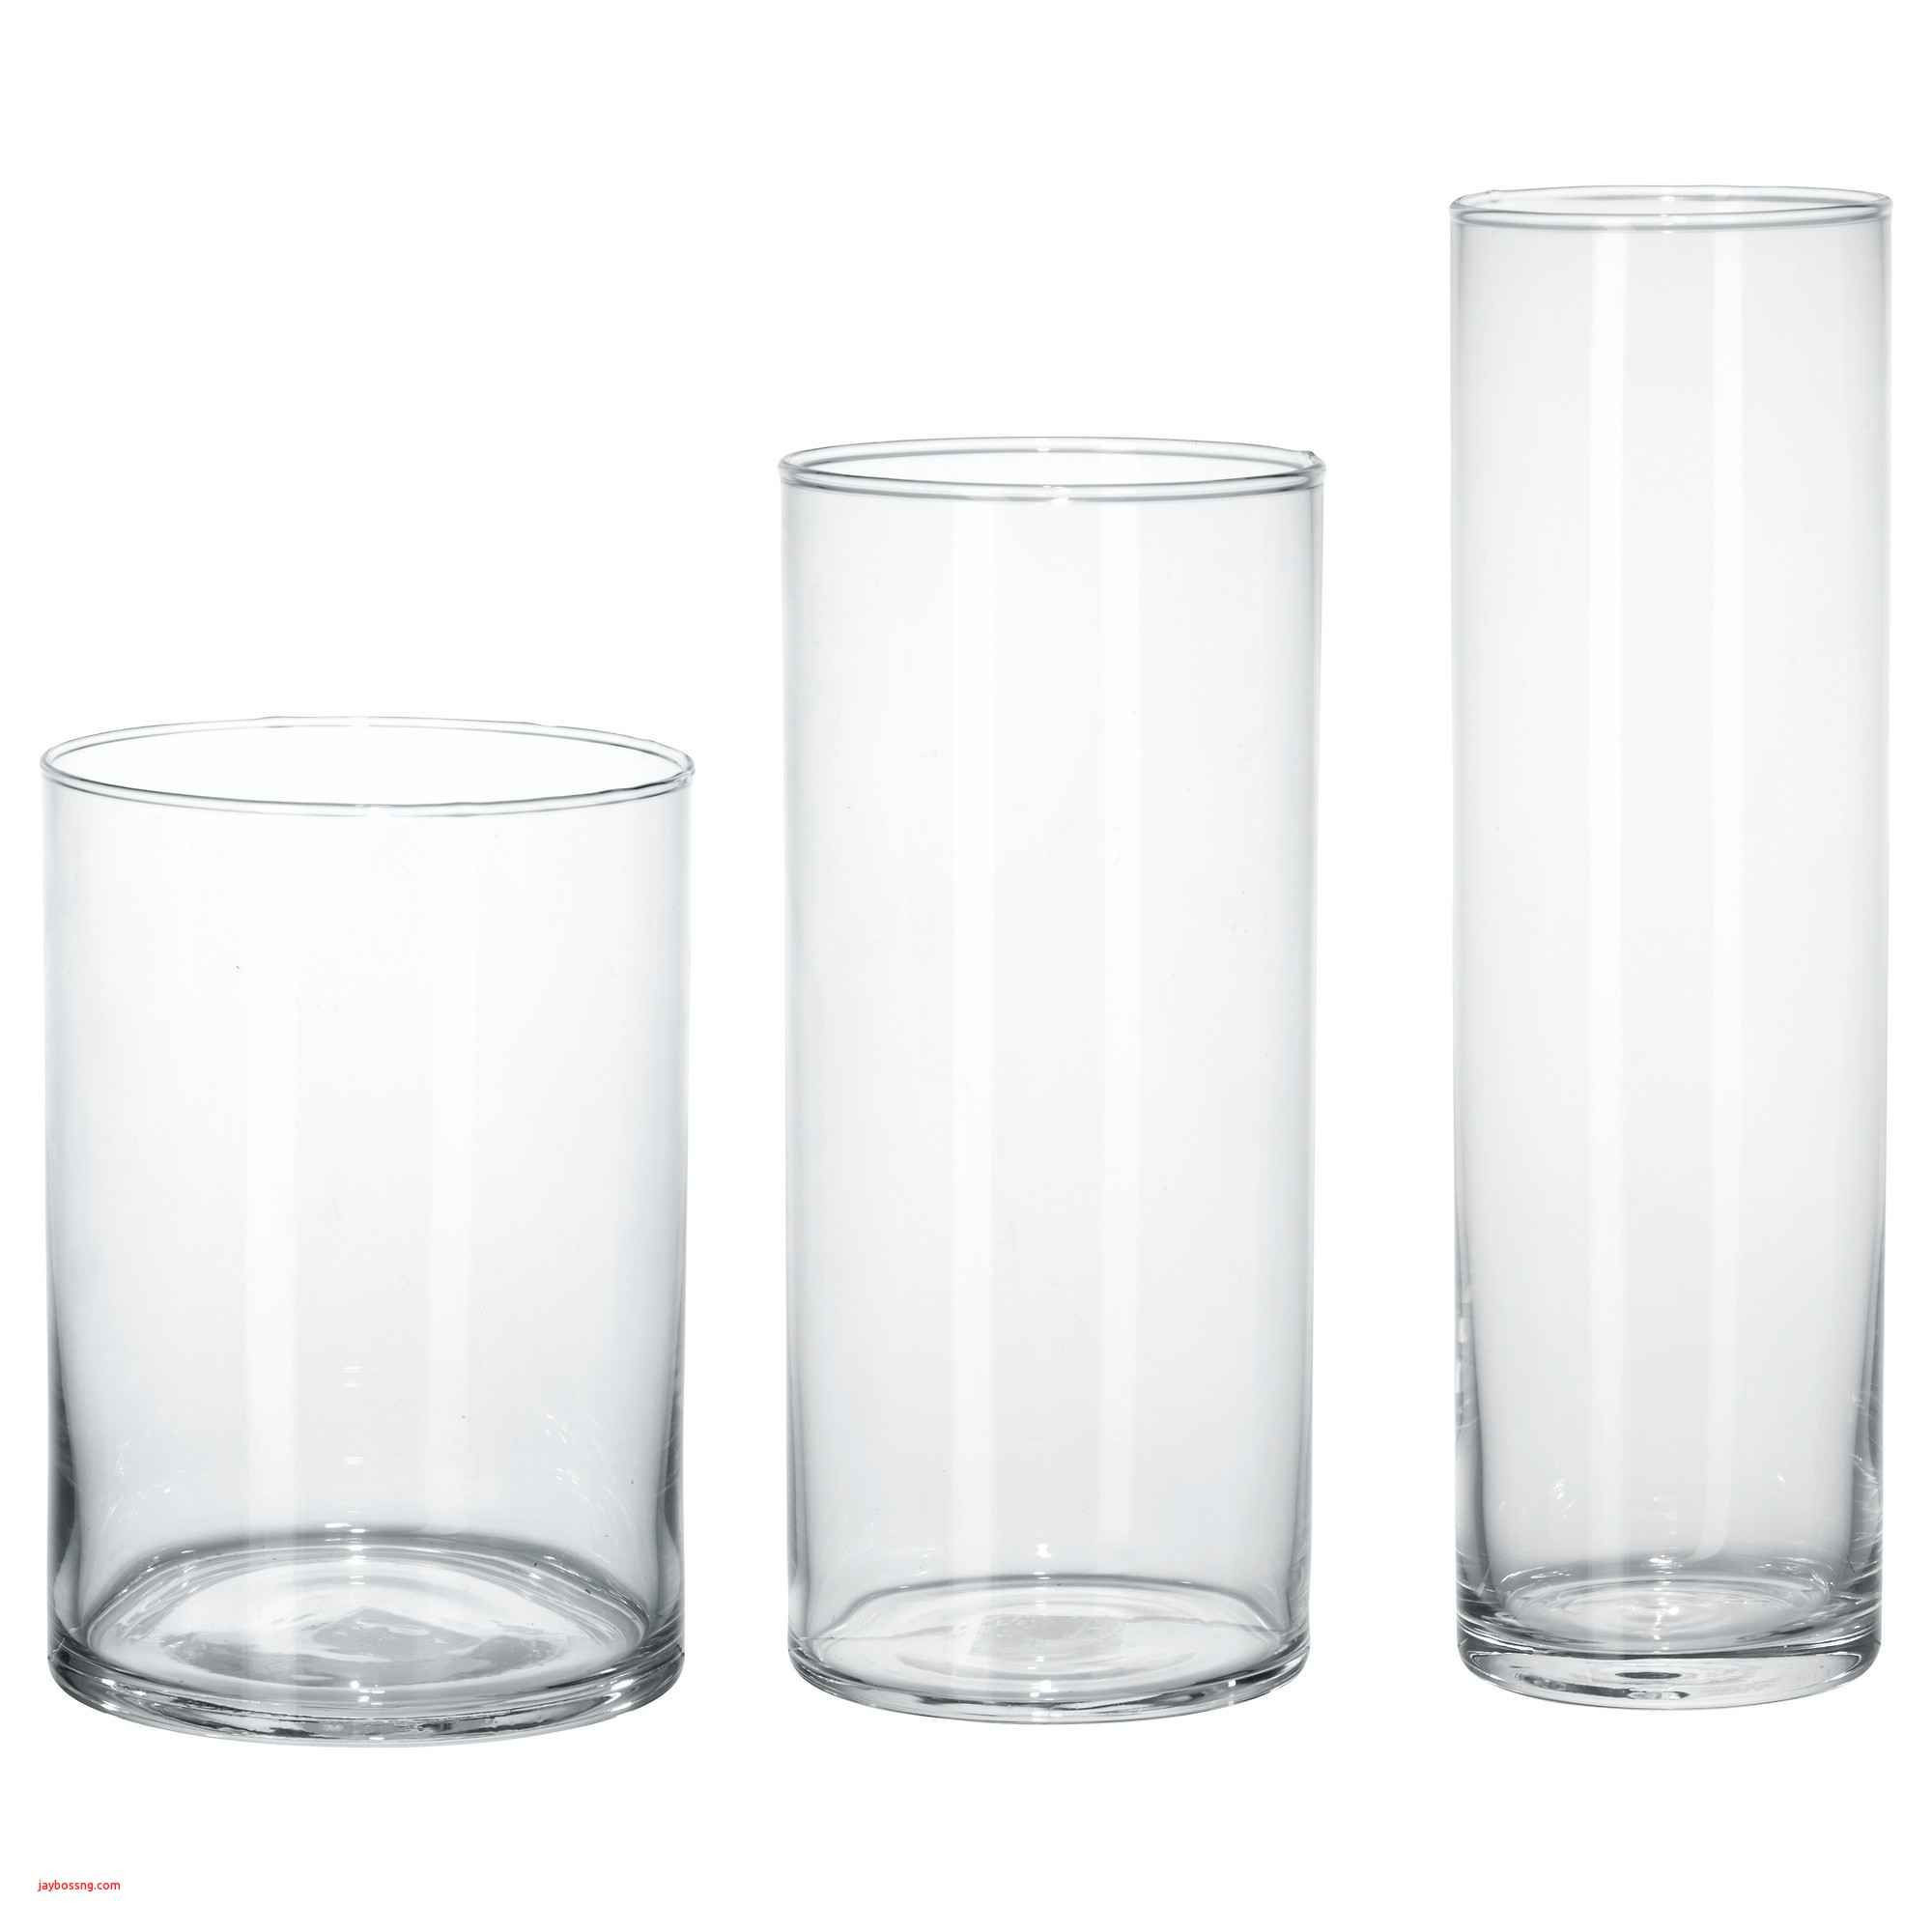 double glass vase of brown glass vase fresh ikea white table created pe s5h vases ikea with regard to brown glass vase fresh ikea white table created pe s5h vases ikea vase i 0d bladet